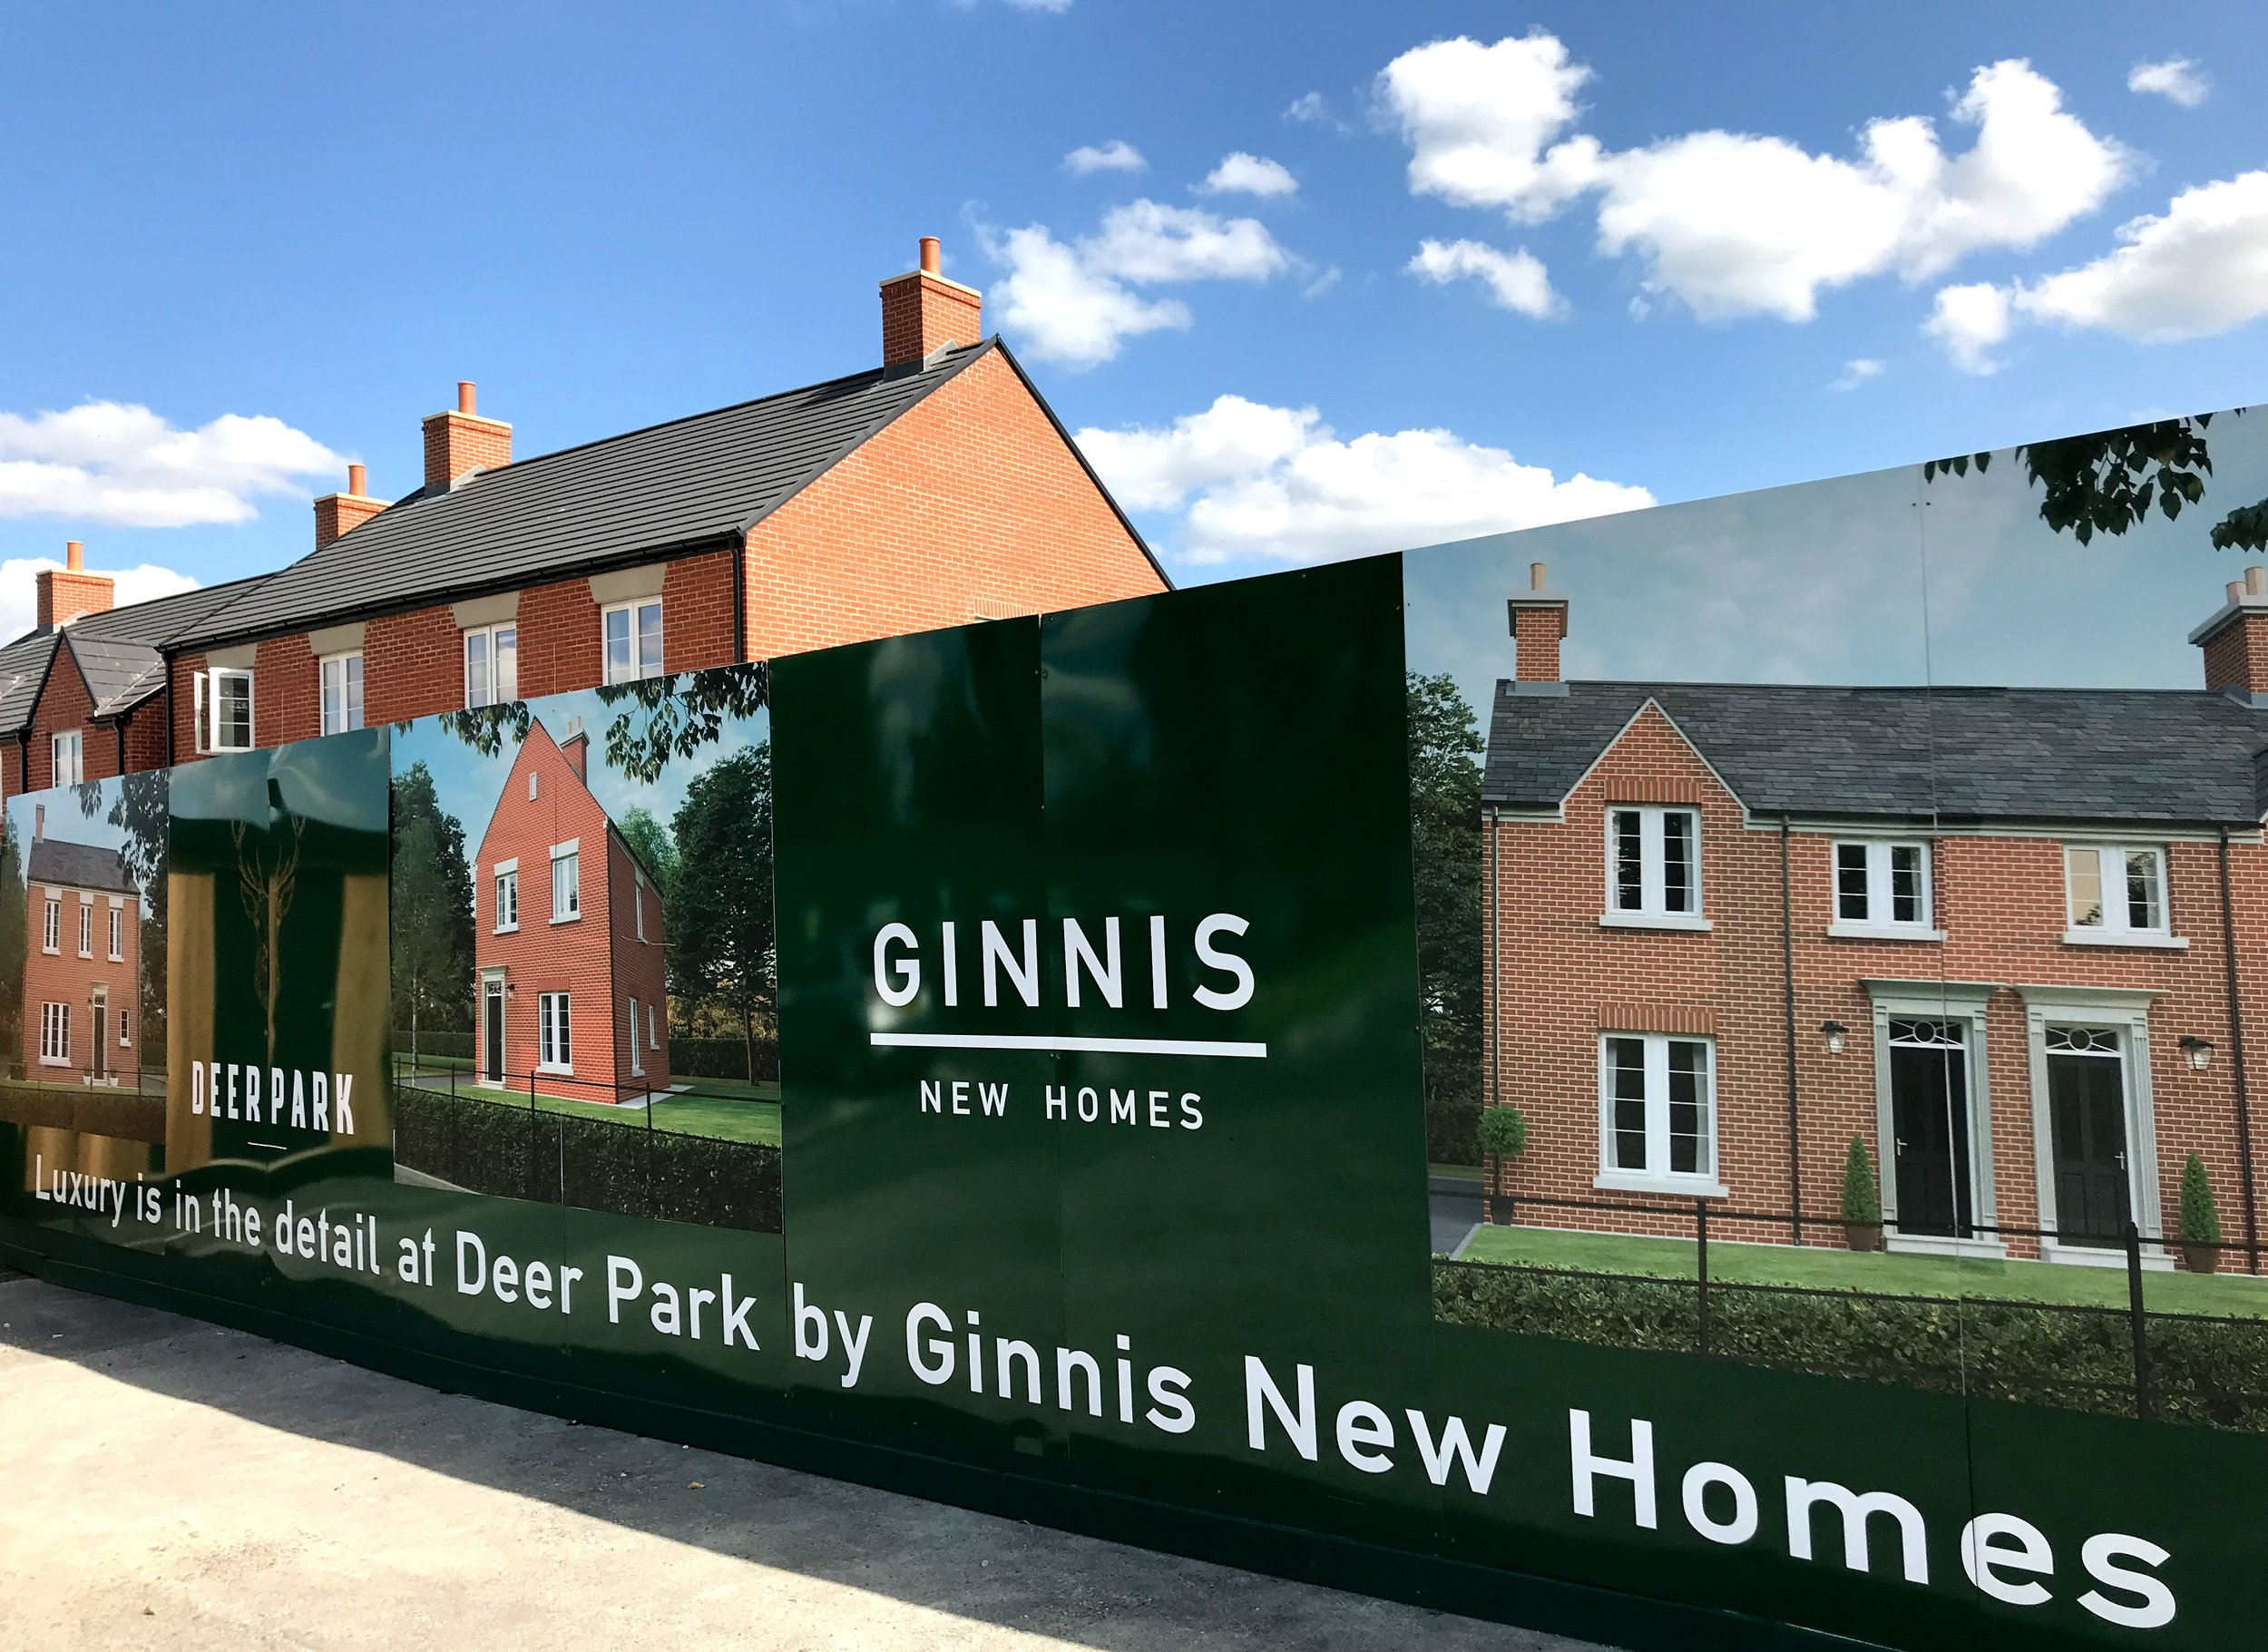 Deer Park is a development of 30 exclusive houses on the edge of Ripley in Derbyshire. Penguin PR: public relations, media and communications